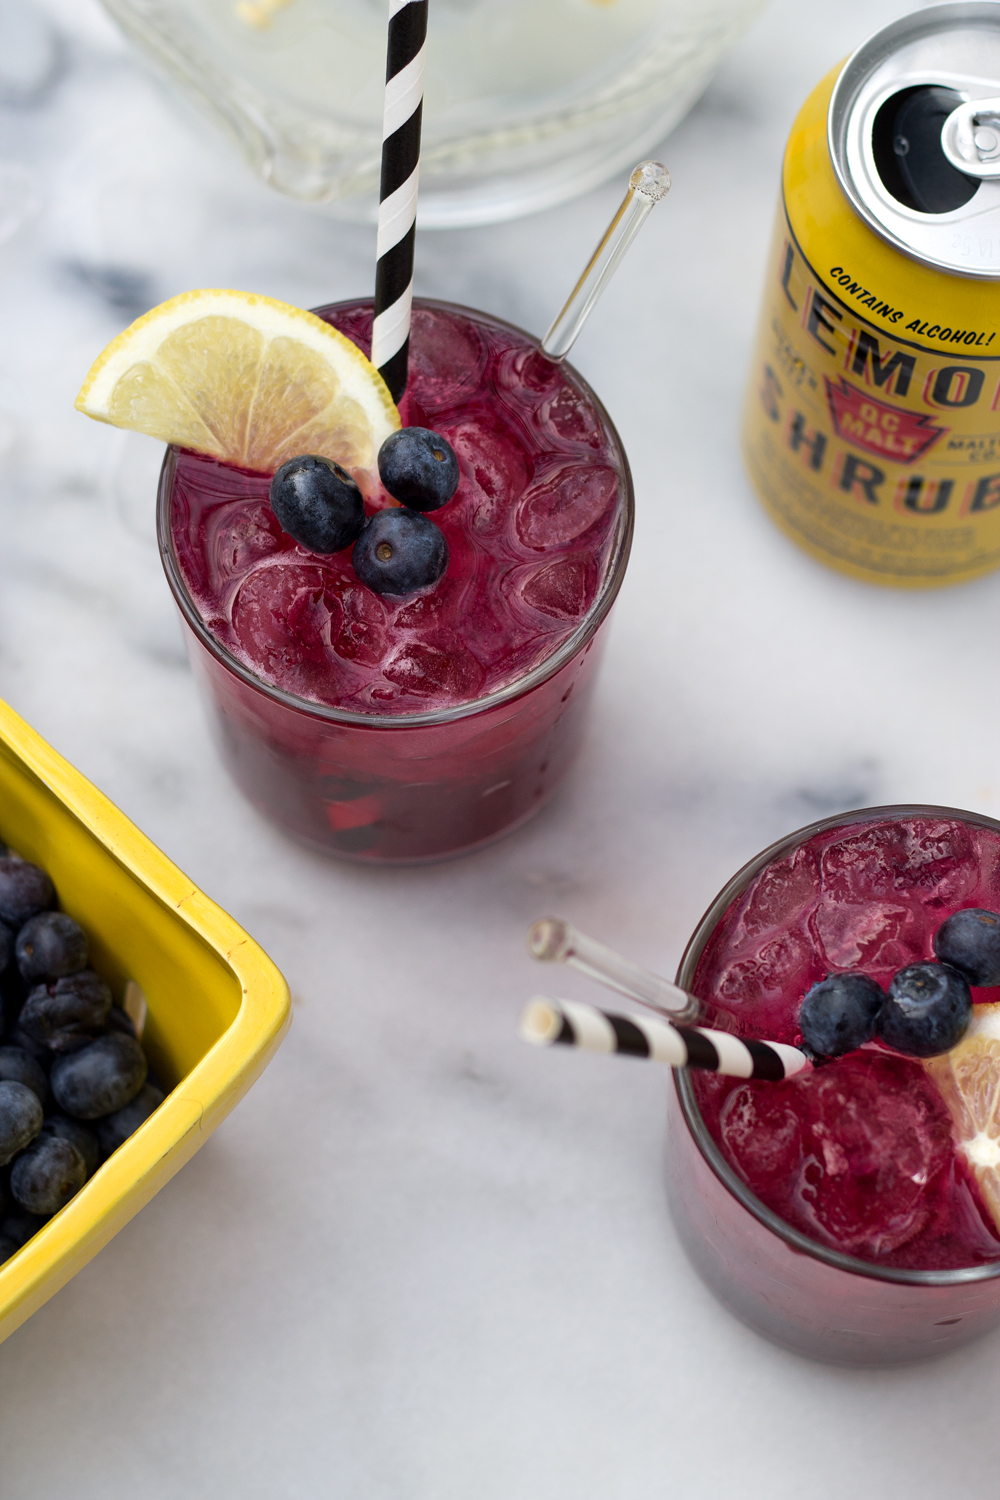 Boozy Lemonade with Blueberries from the Unusually Lovely blog.